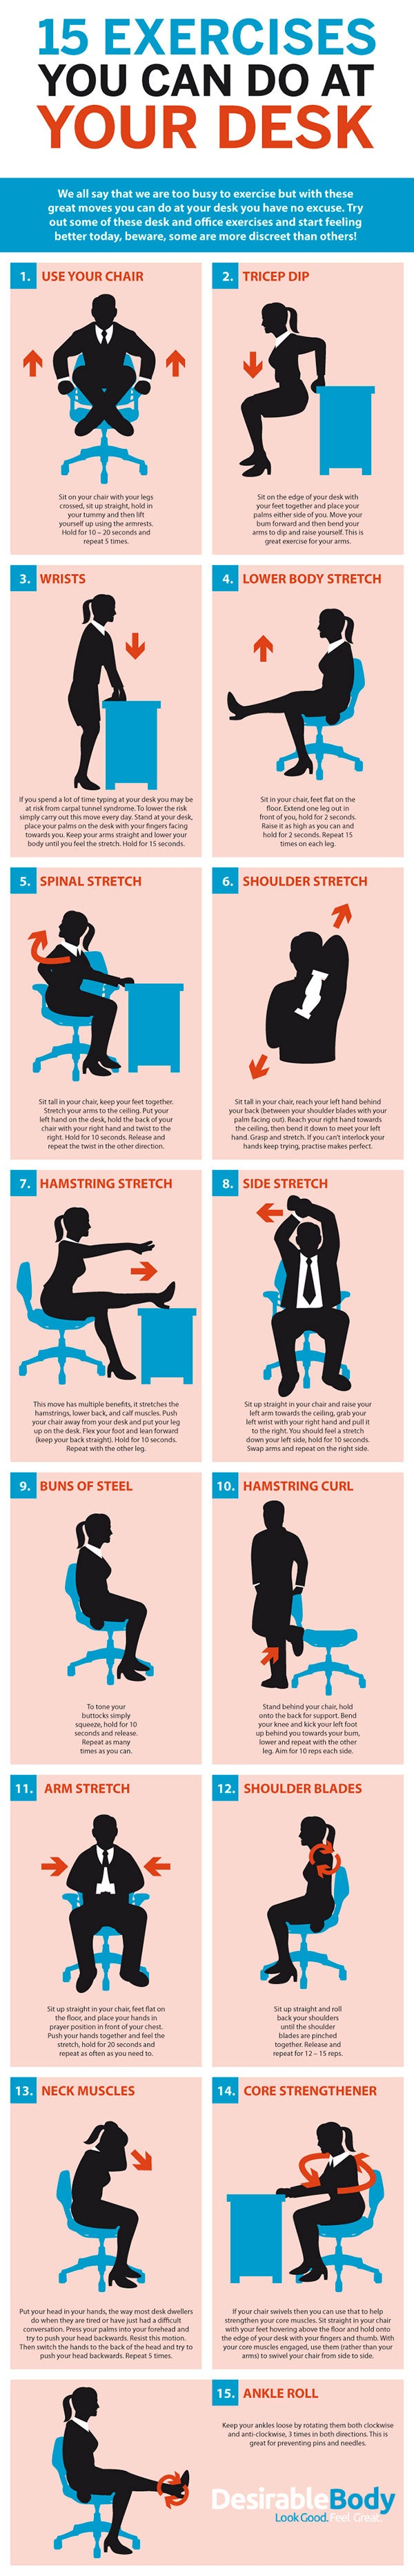 This Graphic Shows Bunch of Desk-Based Exercises for the Office